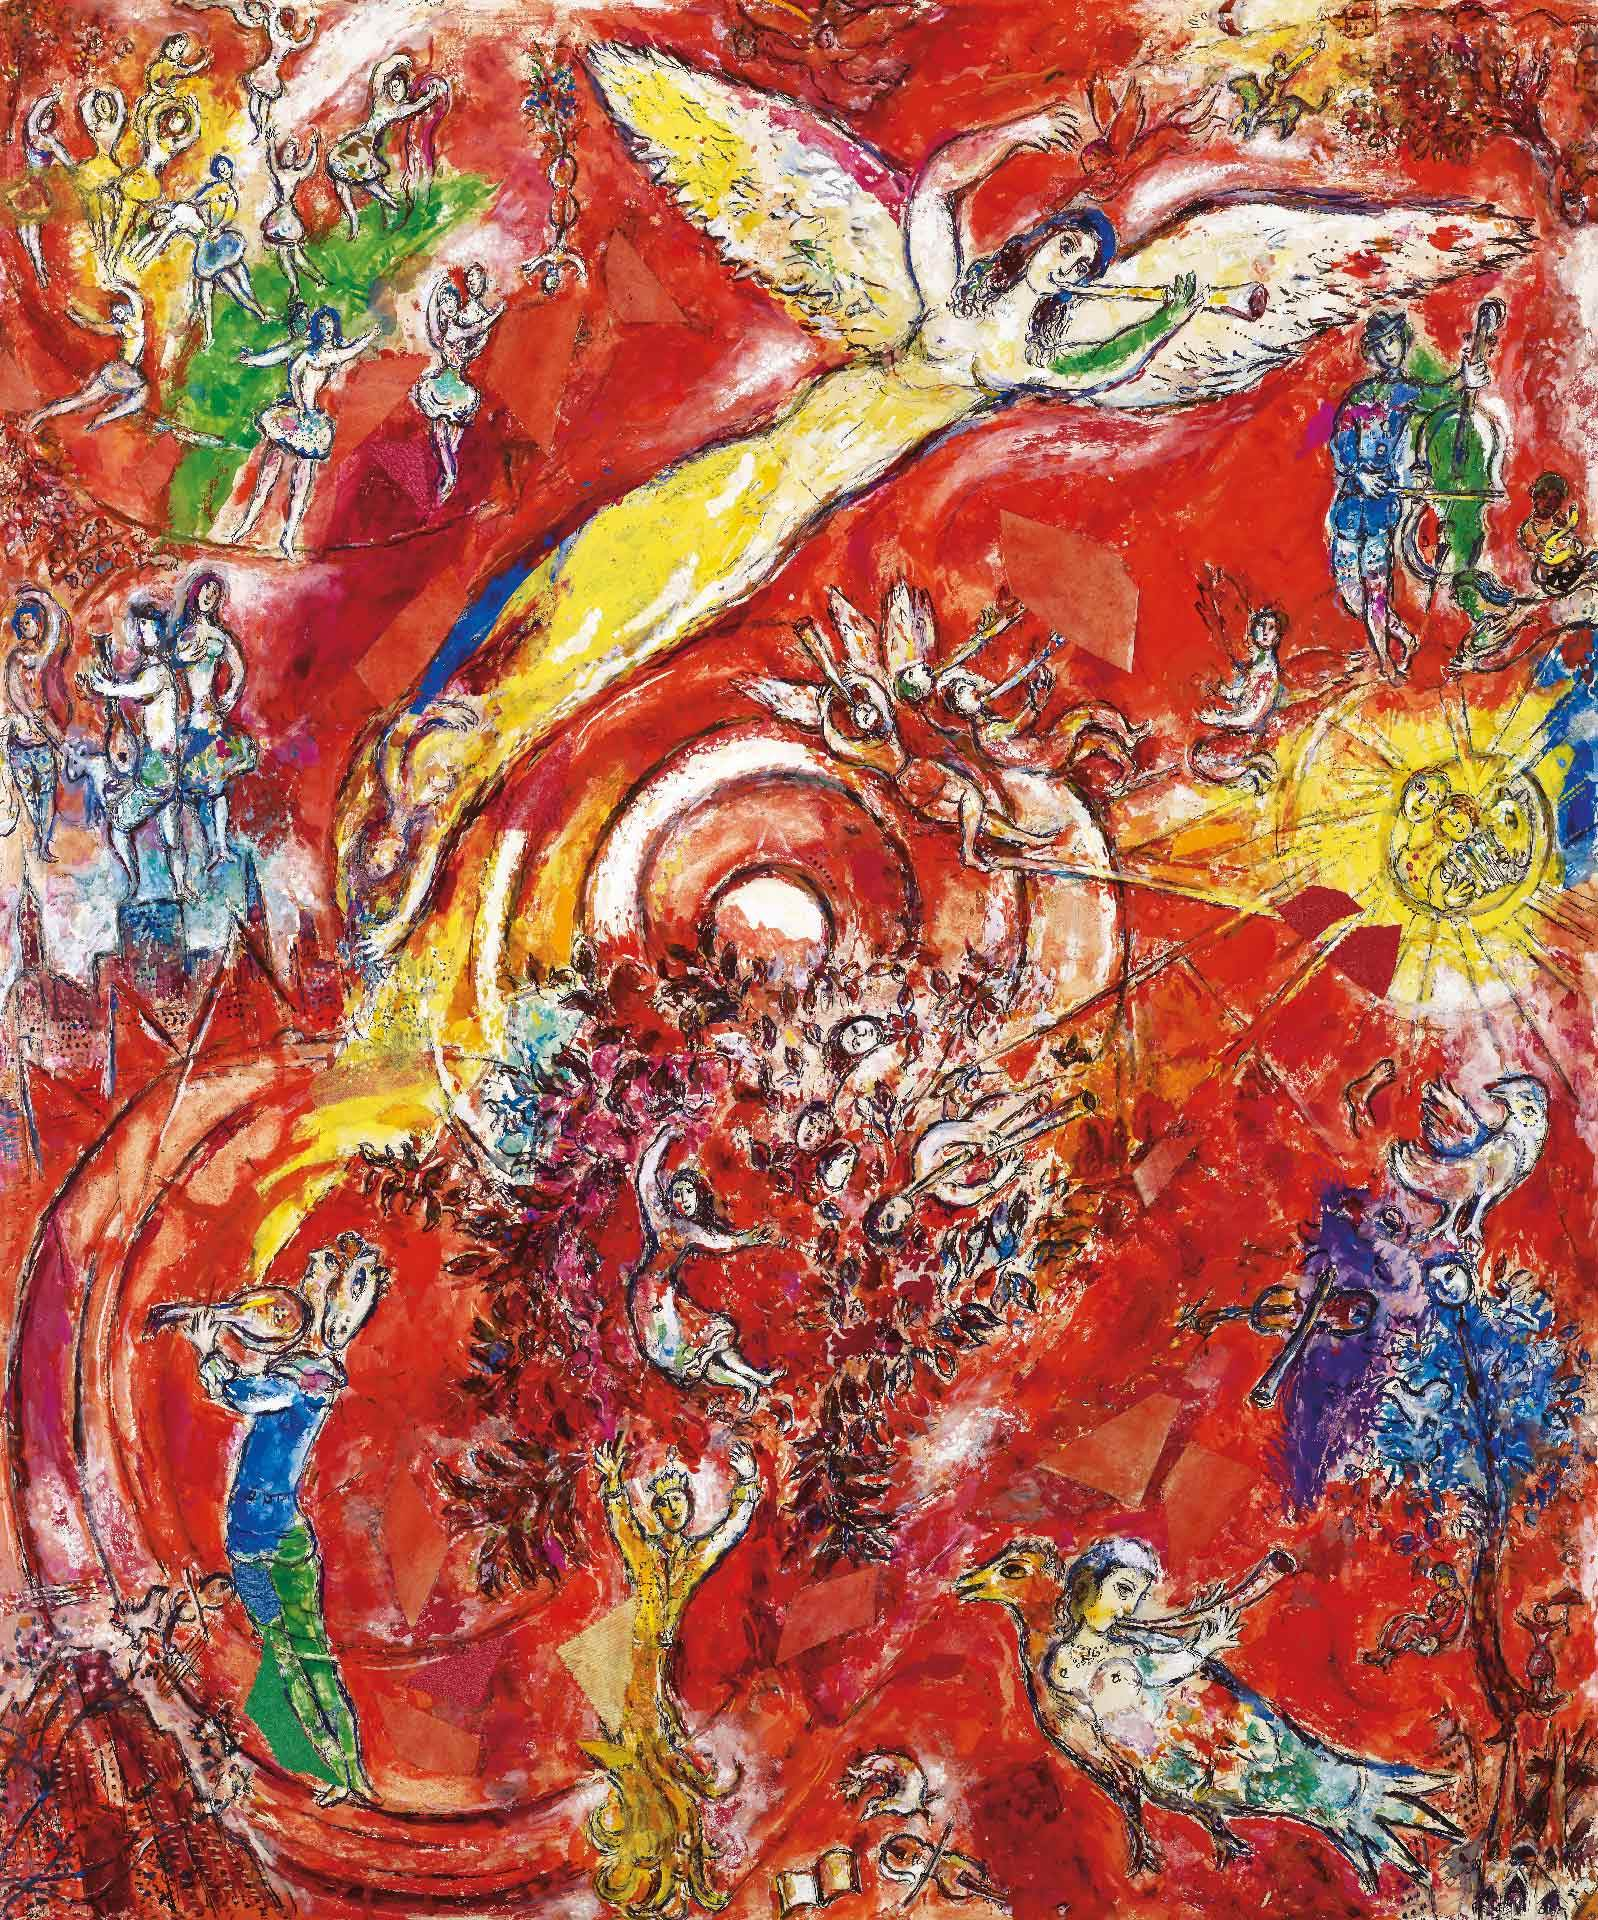 Marc Chagall (1887-1985), Final model for the wall painting at the Metropolitan Opera, Lincoln Center for the Performing Arts, New York: The Triumph of Music (detail), 1966